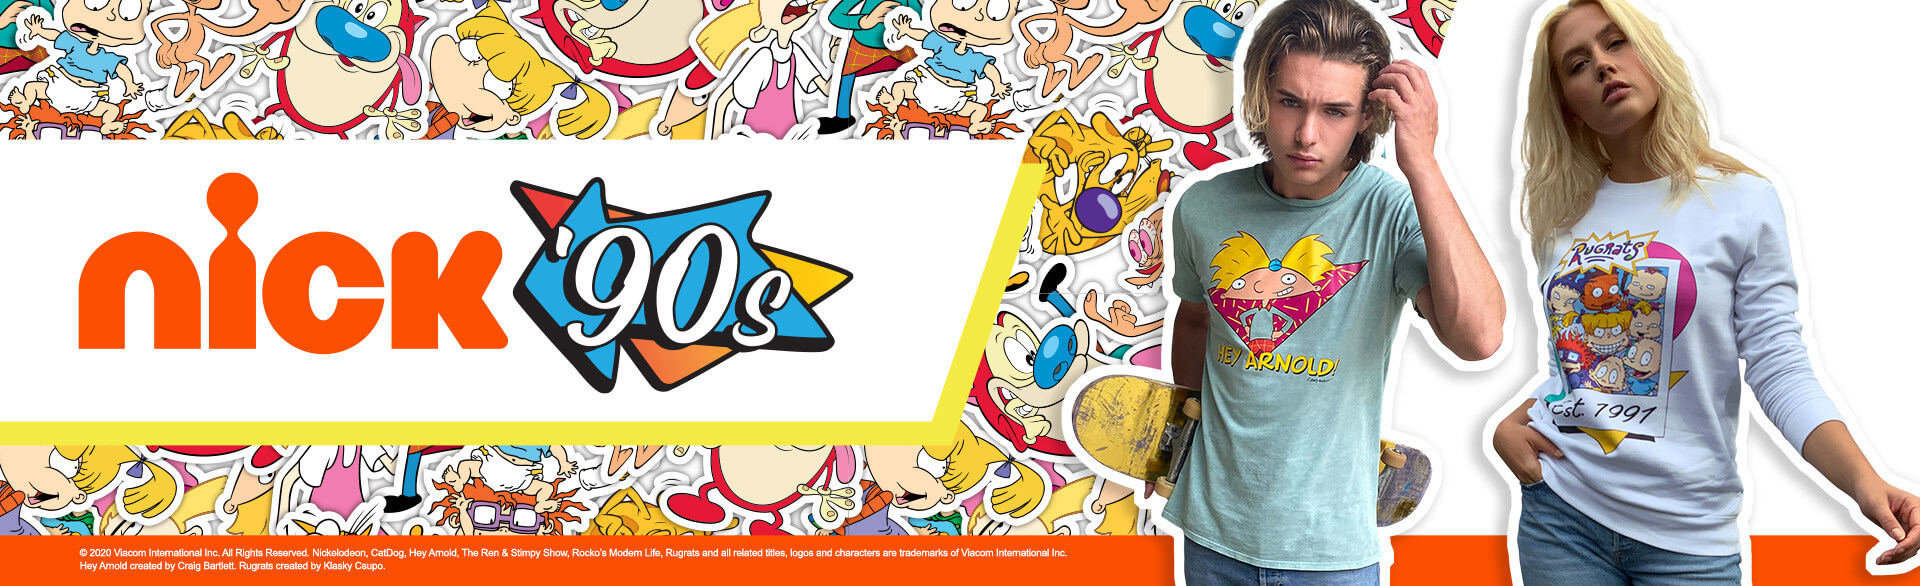 COLLECTION NICK 90'S